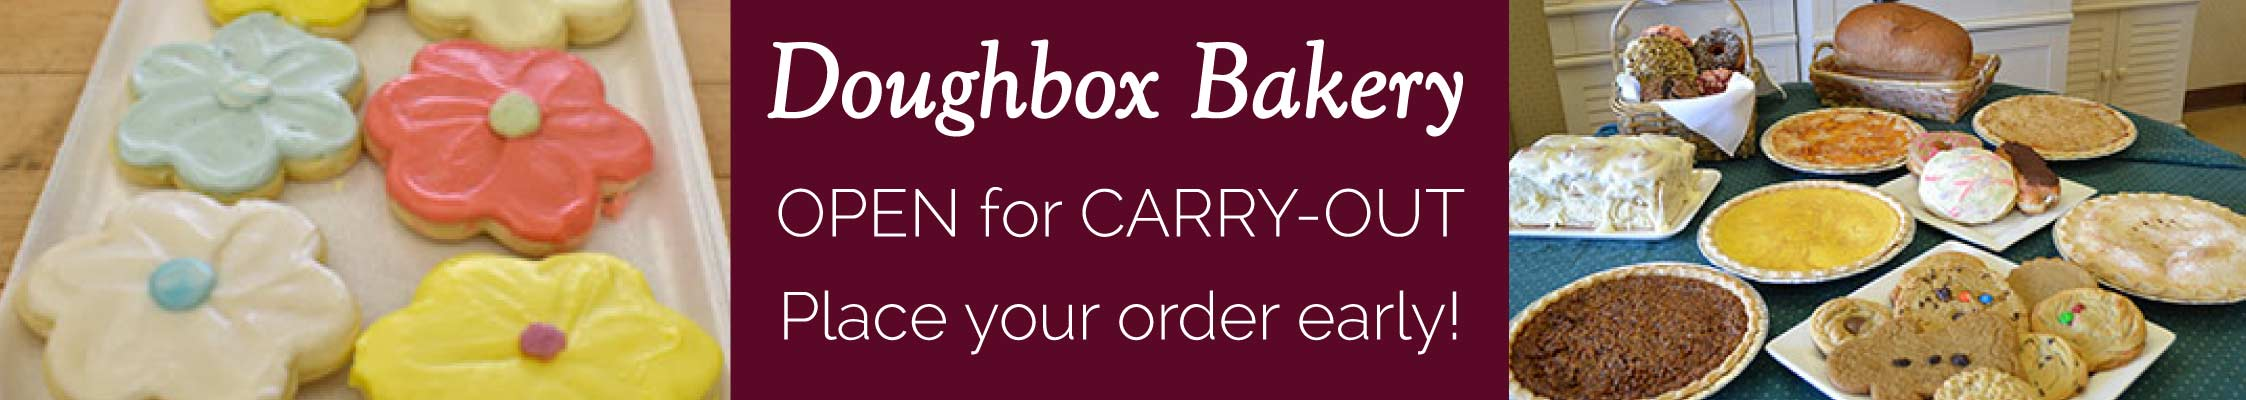 Doughbox Bakery Open for Carry-out - Cookies and Baked Goods